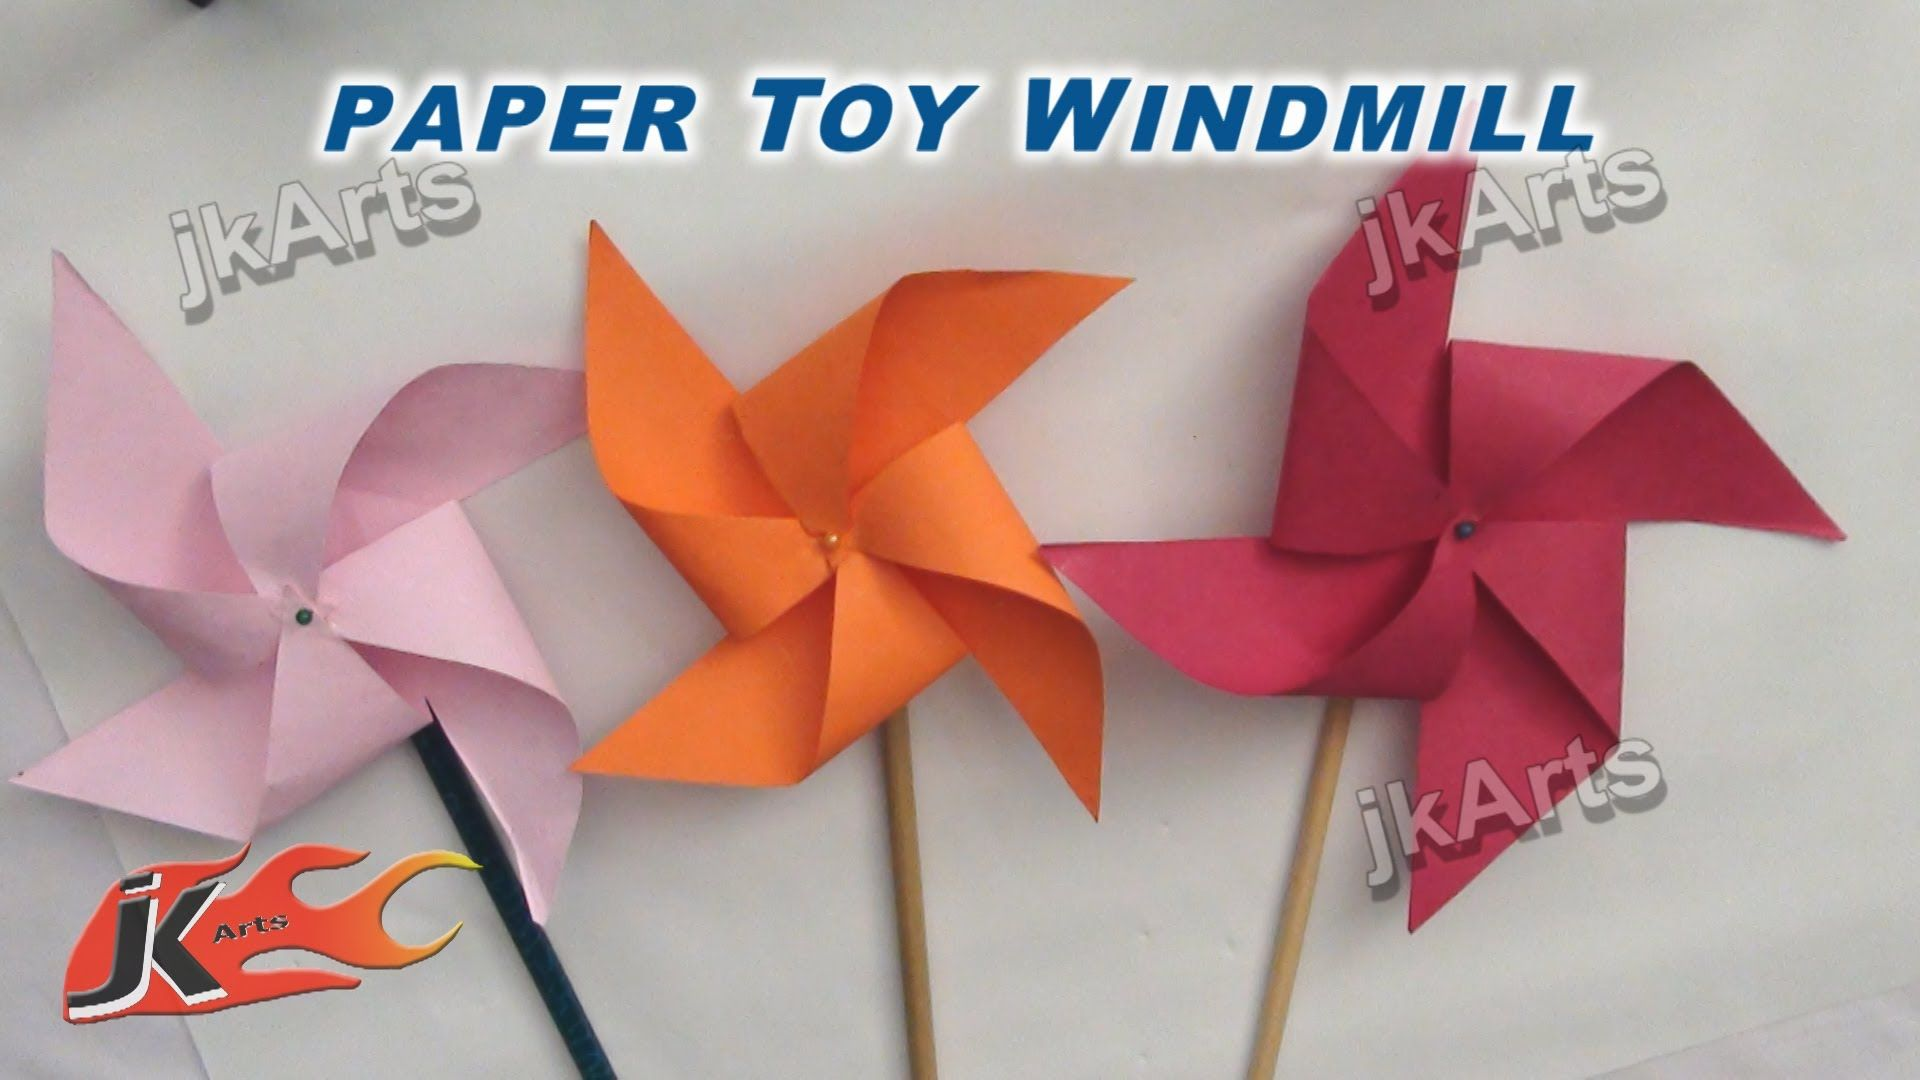 Diy How To Make Paper Toy Windmill Easy Craft For Kids Jk Arts 256 Paper Crafts For Kids Paper Crafts Easy Paper Crafts